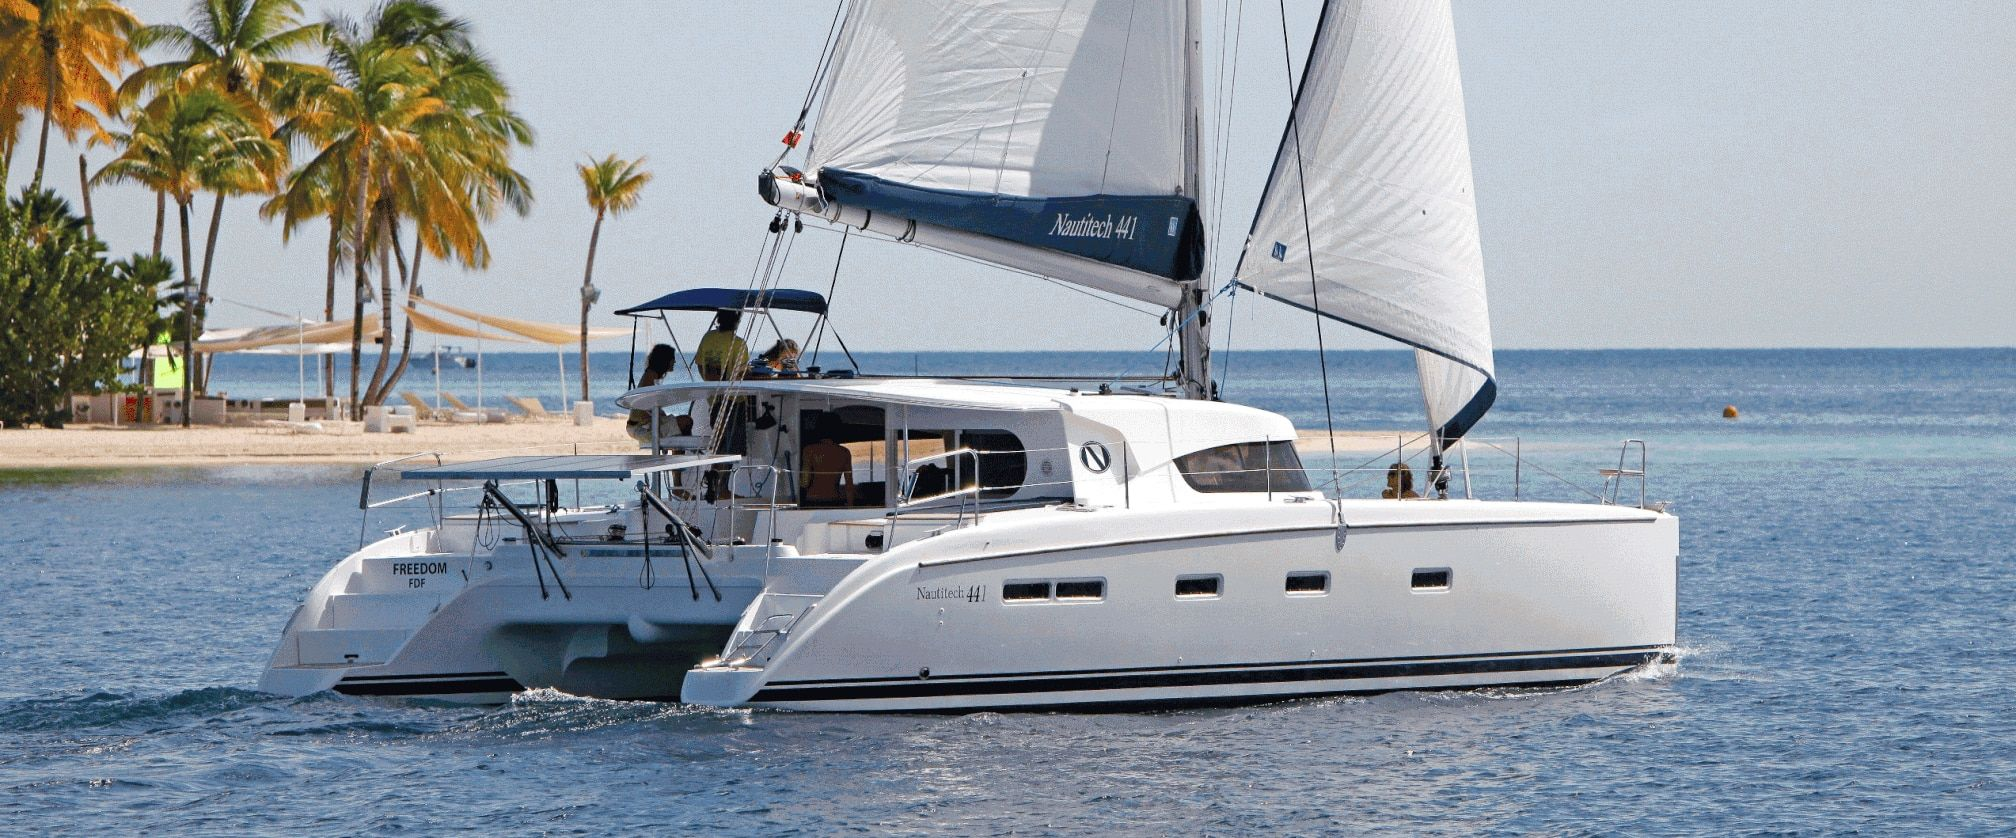 40 best catamarans and trimarans of all time in 2020